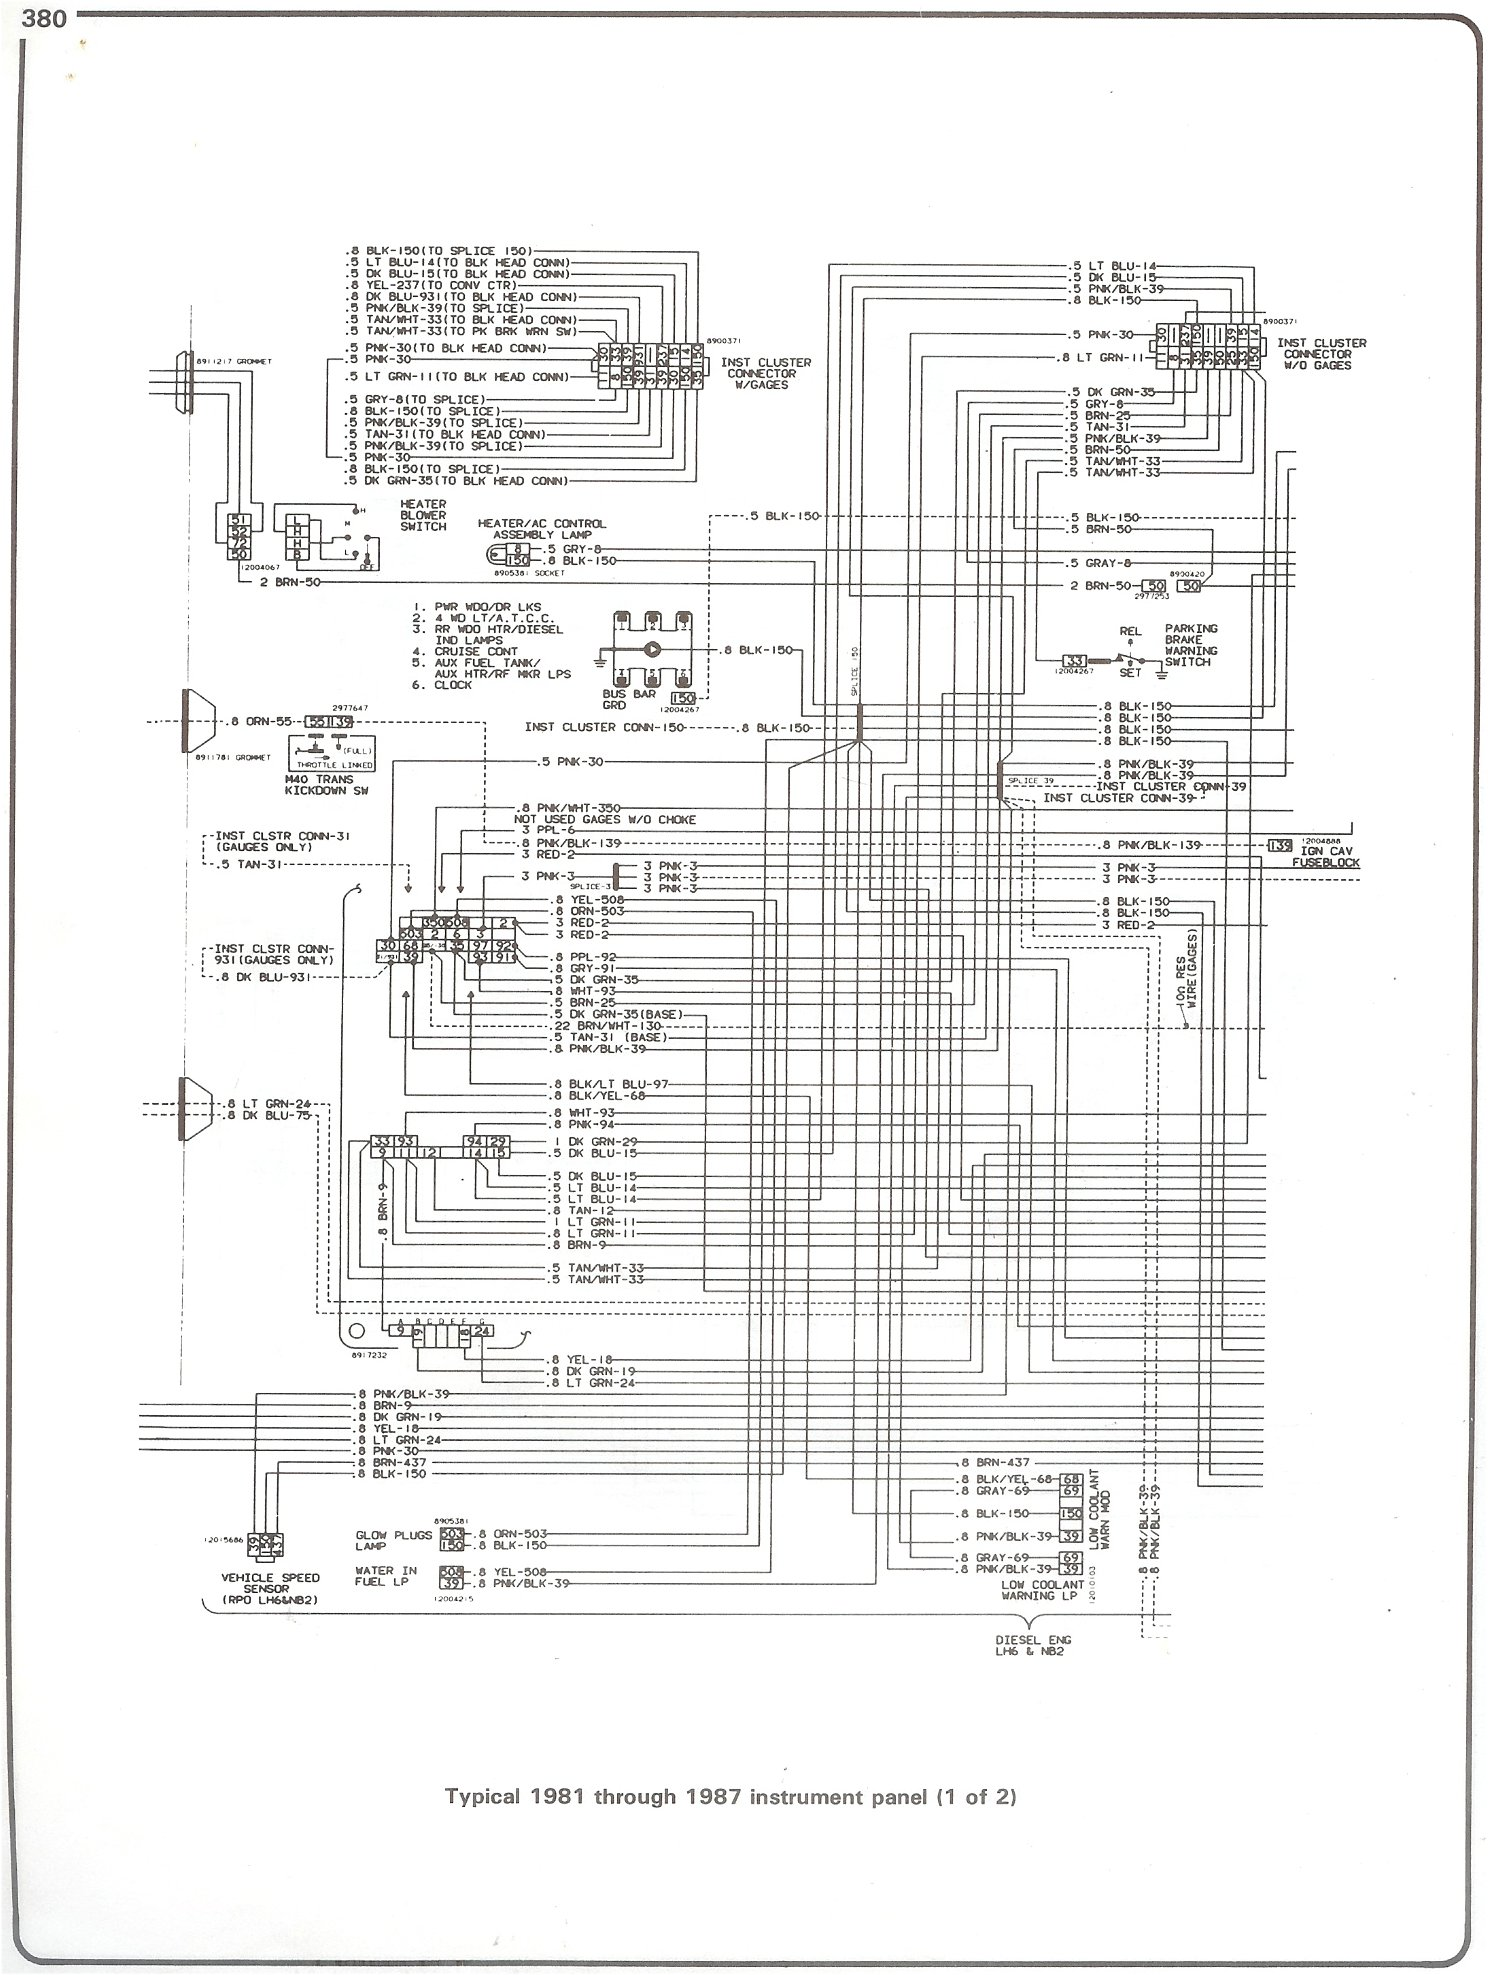 1999 chevy suburban fuse diagram 1999 chevy suburban wiring diagram complete 73 87 wiring diagrams #2